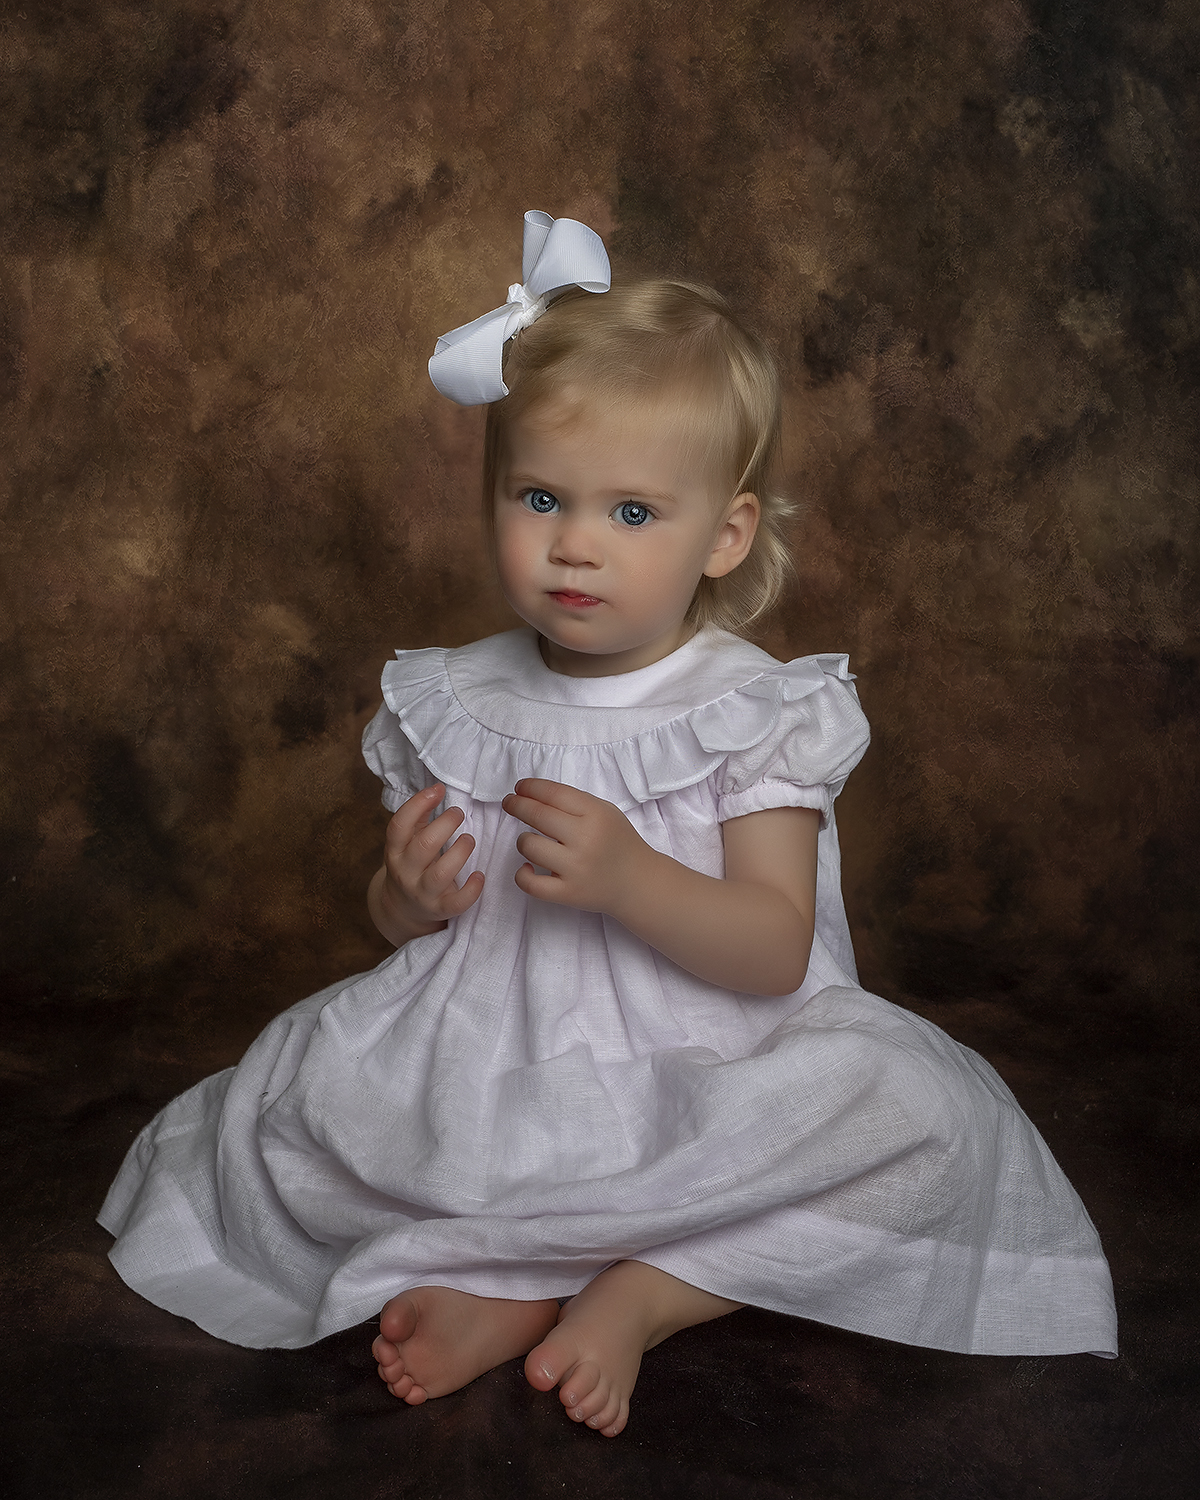 painted child portrait st simons island | painterly portrait of a southern girl